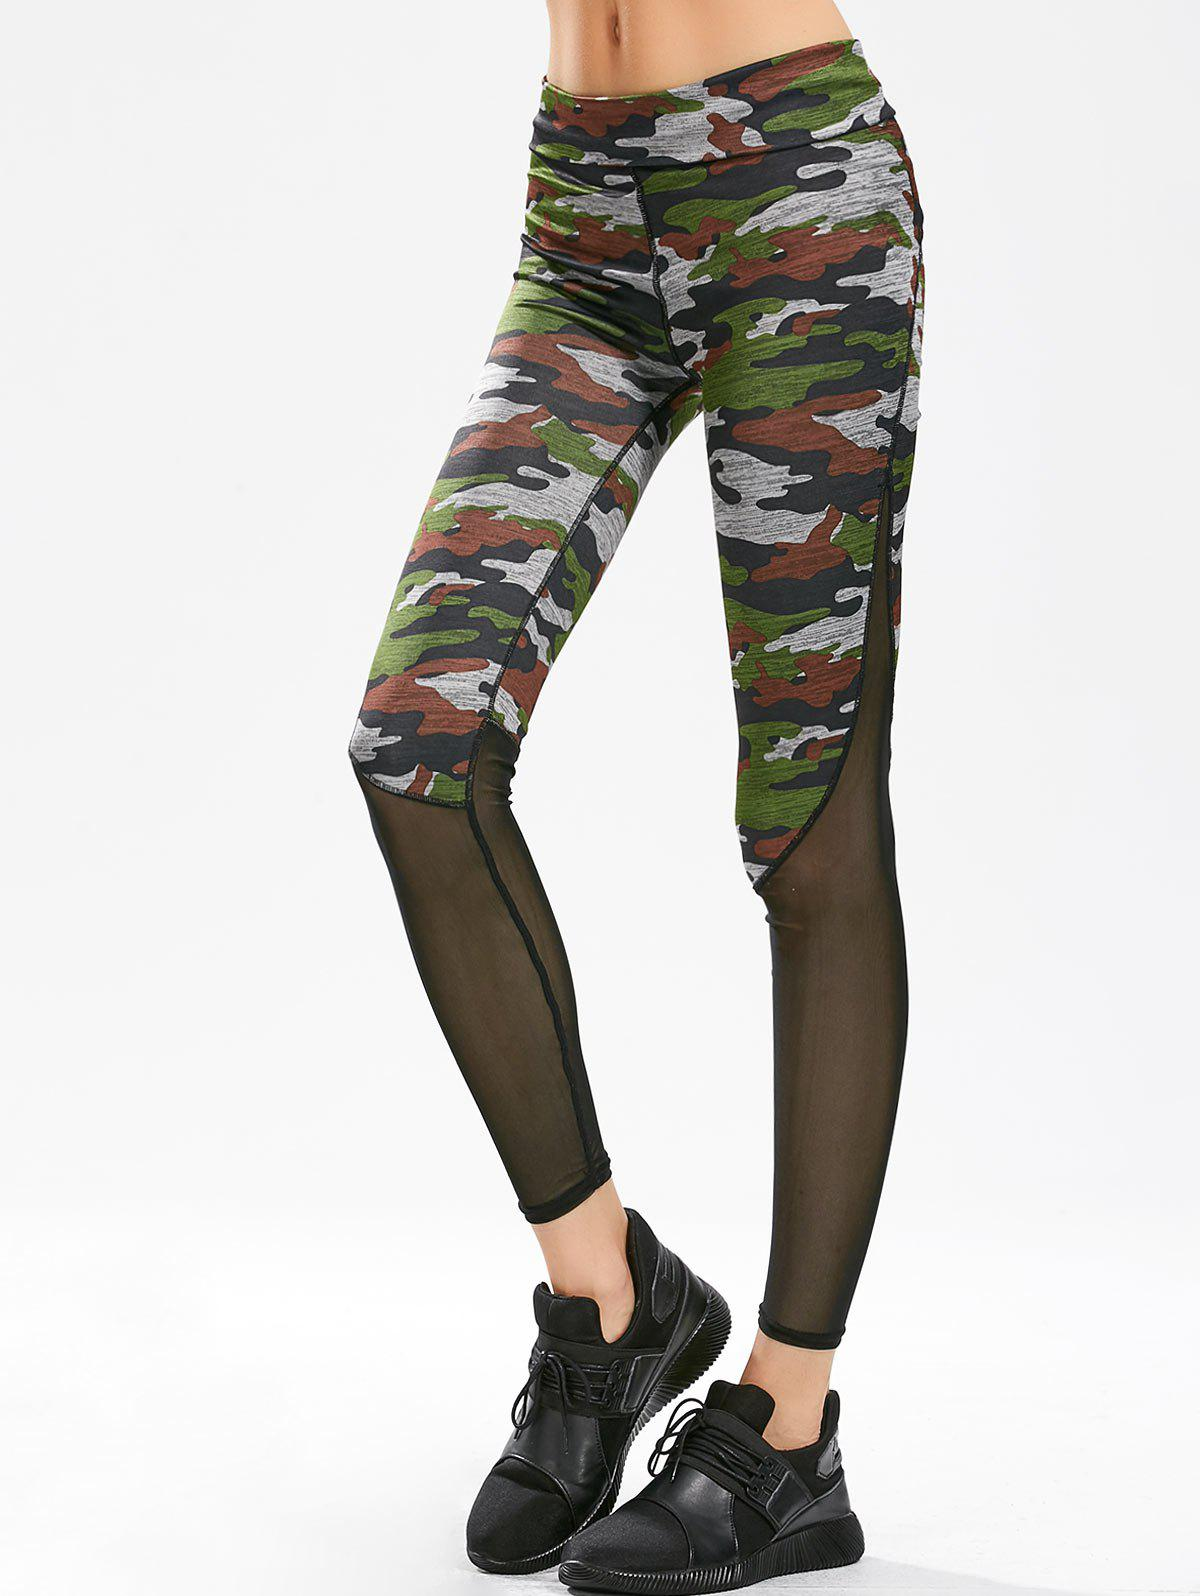 Sheer Mesh Panel Gym Leggings - CAMOUFLAGE M